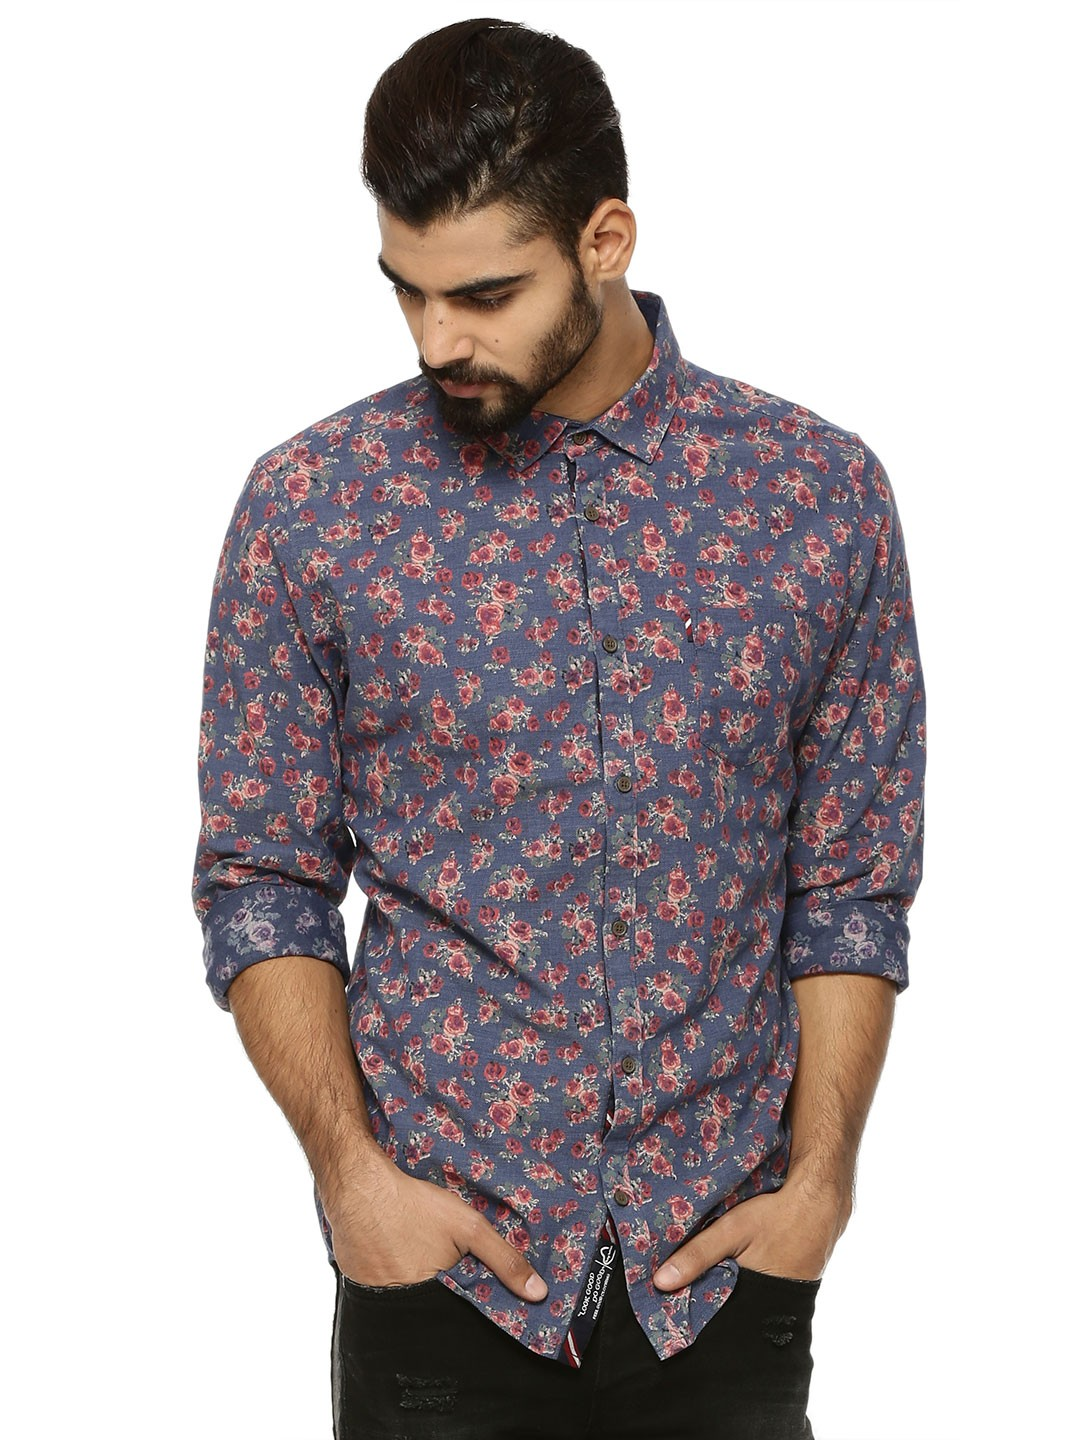 Buy BEING HUMAN Floral Print Shirt For Men - Men's Blue/Multi ...